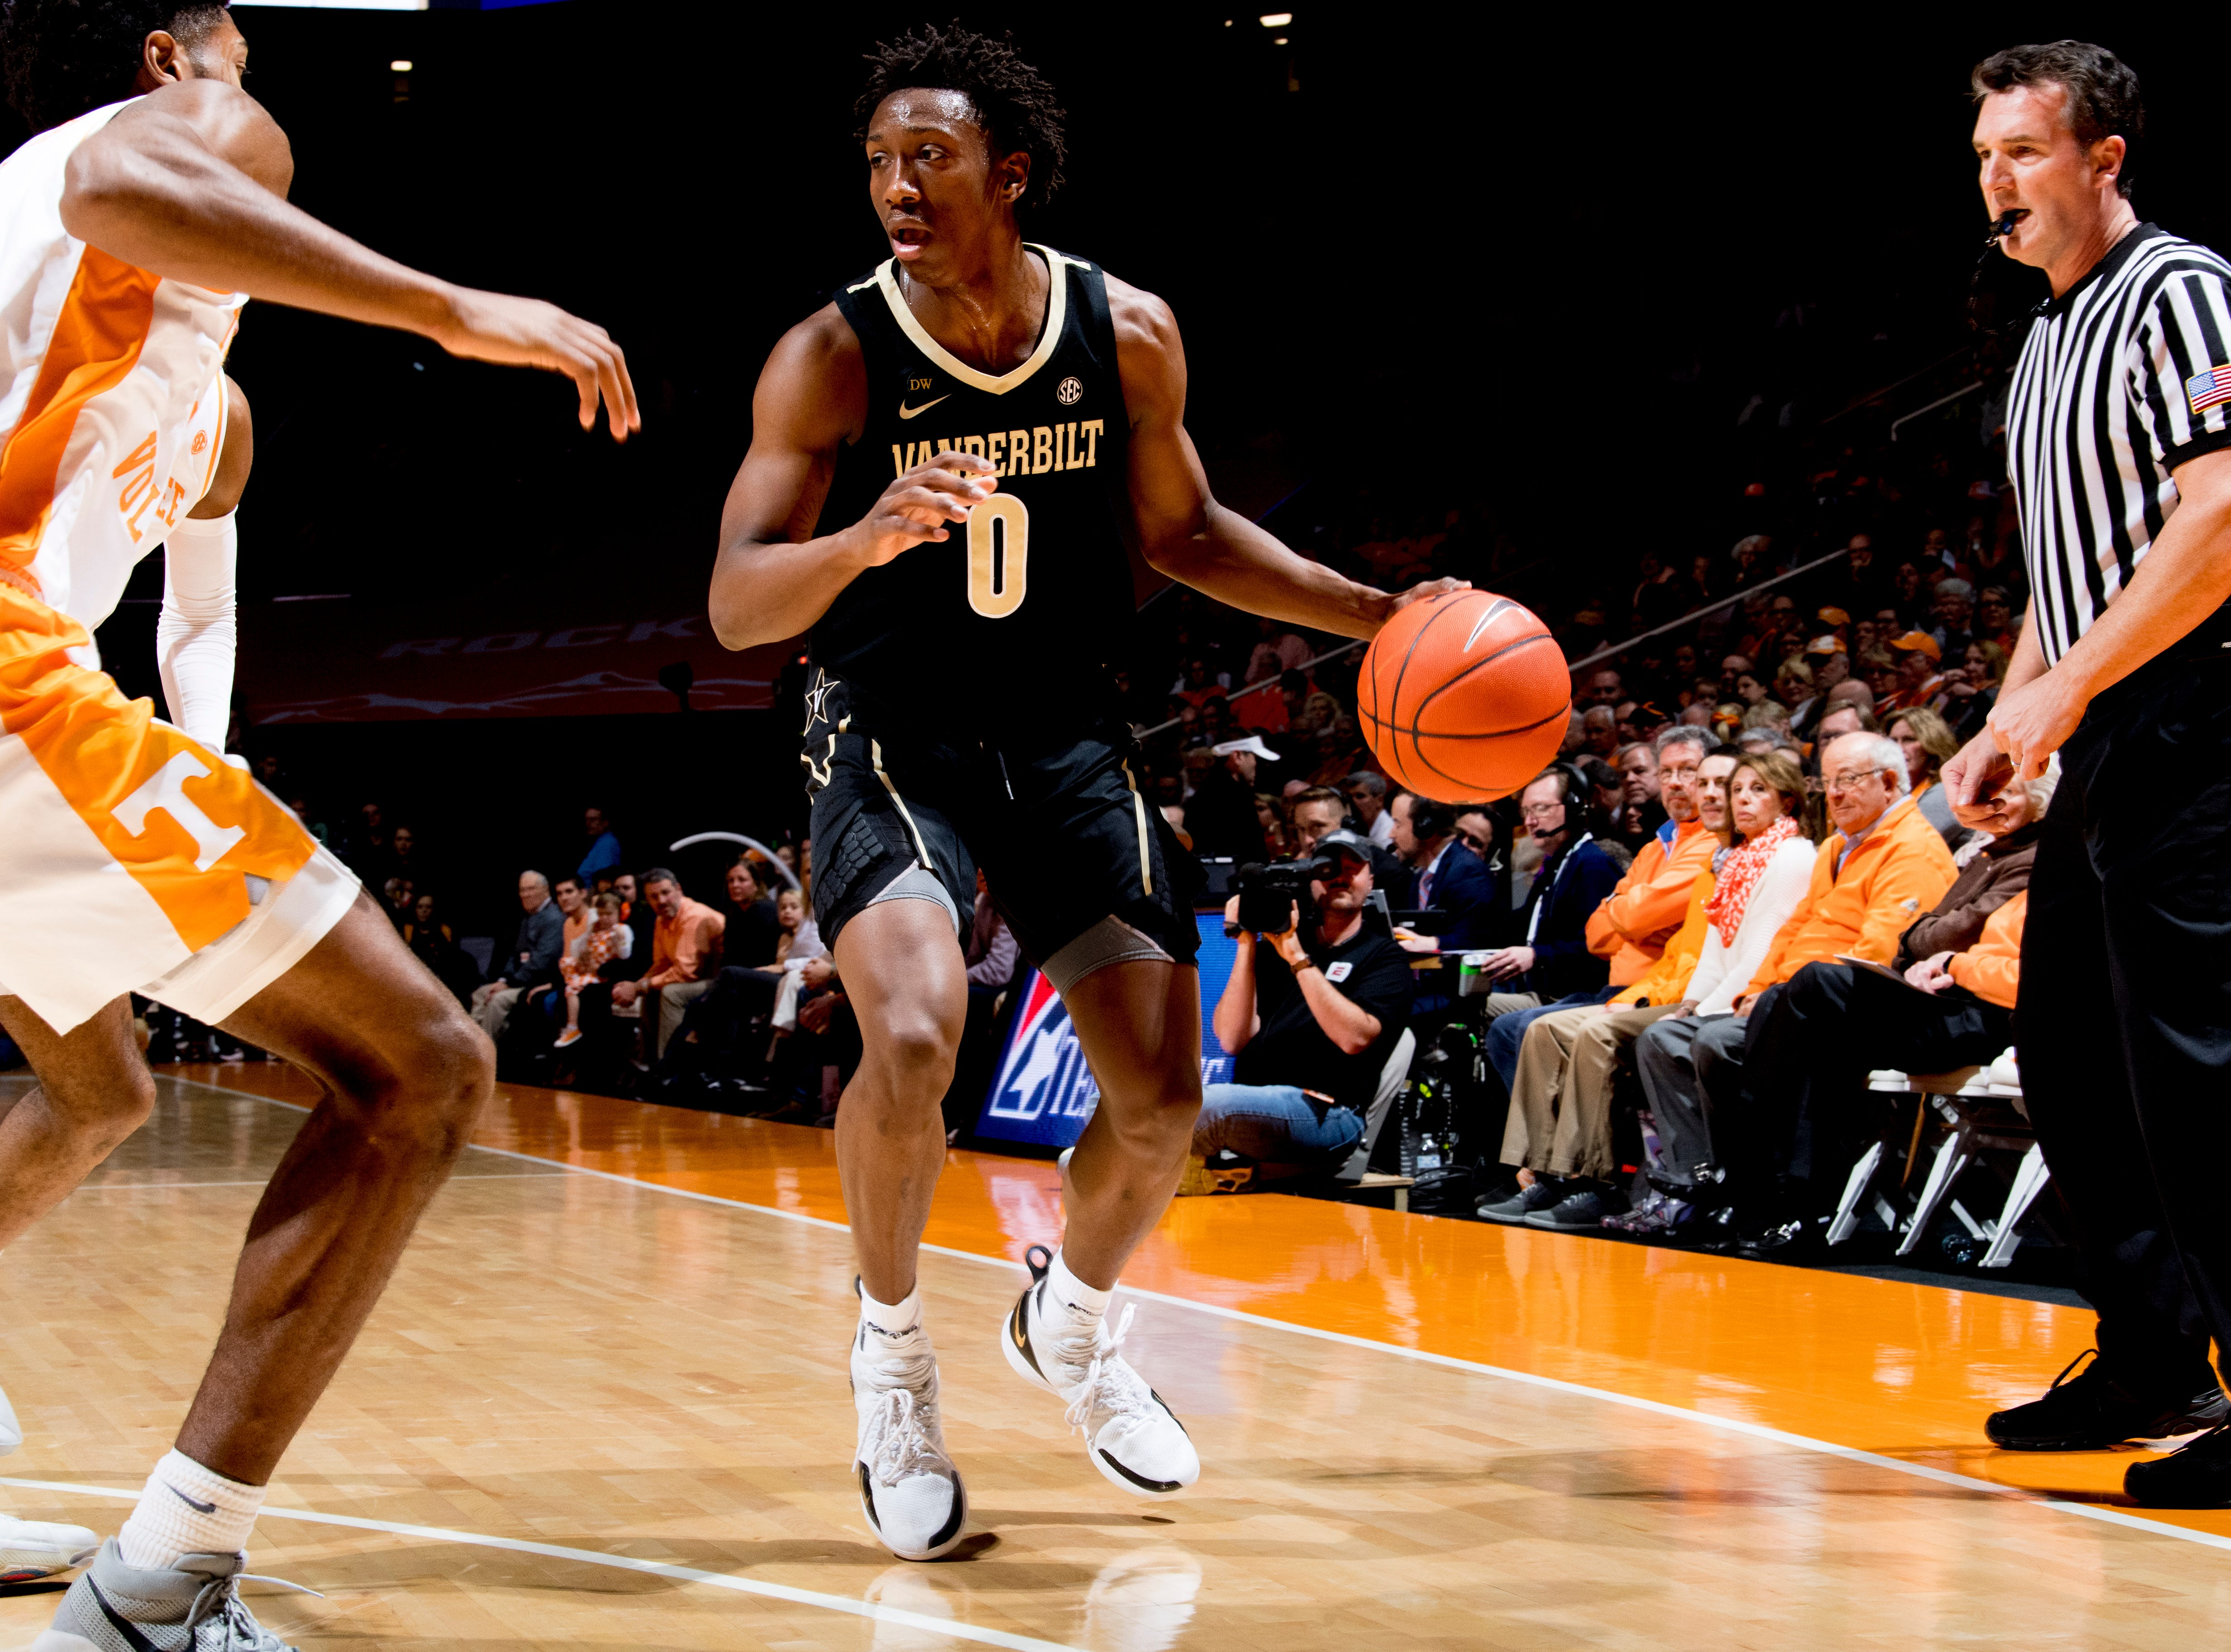 Vanderbilt guard Saben Lee (0) looks to dribble around the Tennessee defense during a game between Tennessee and Vanderbilt at Thompson-Boling Arena in Knoxville, Tennessee on Tuesday, February 19, 2019.